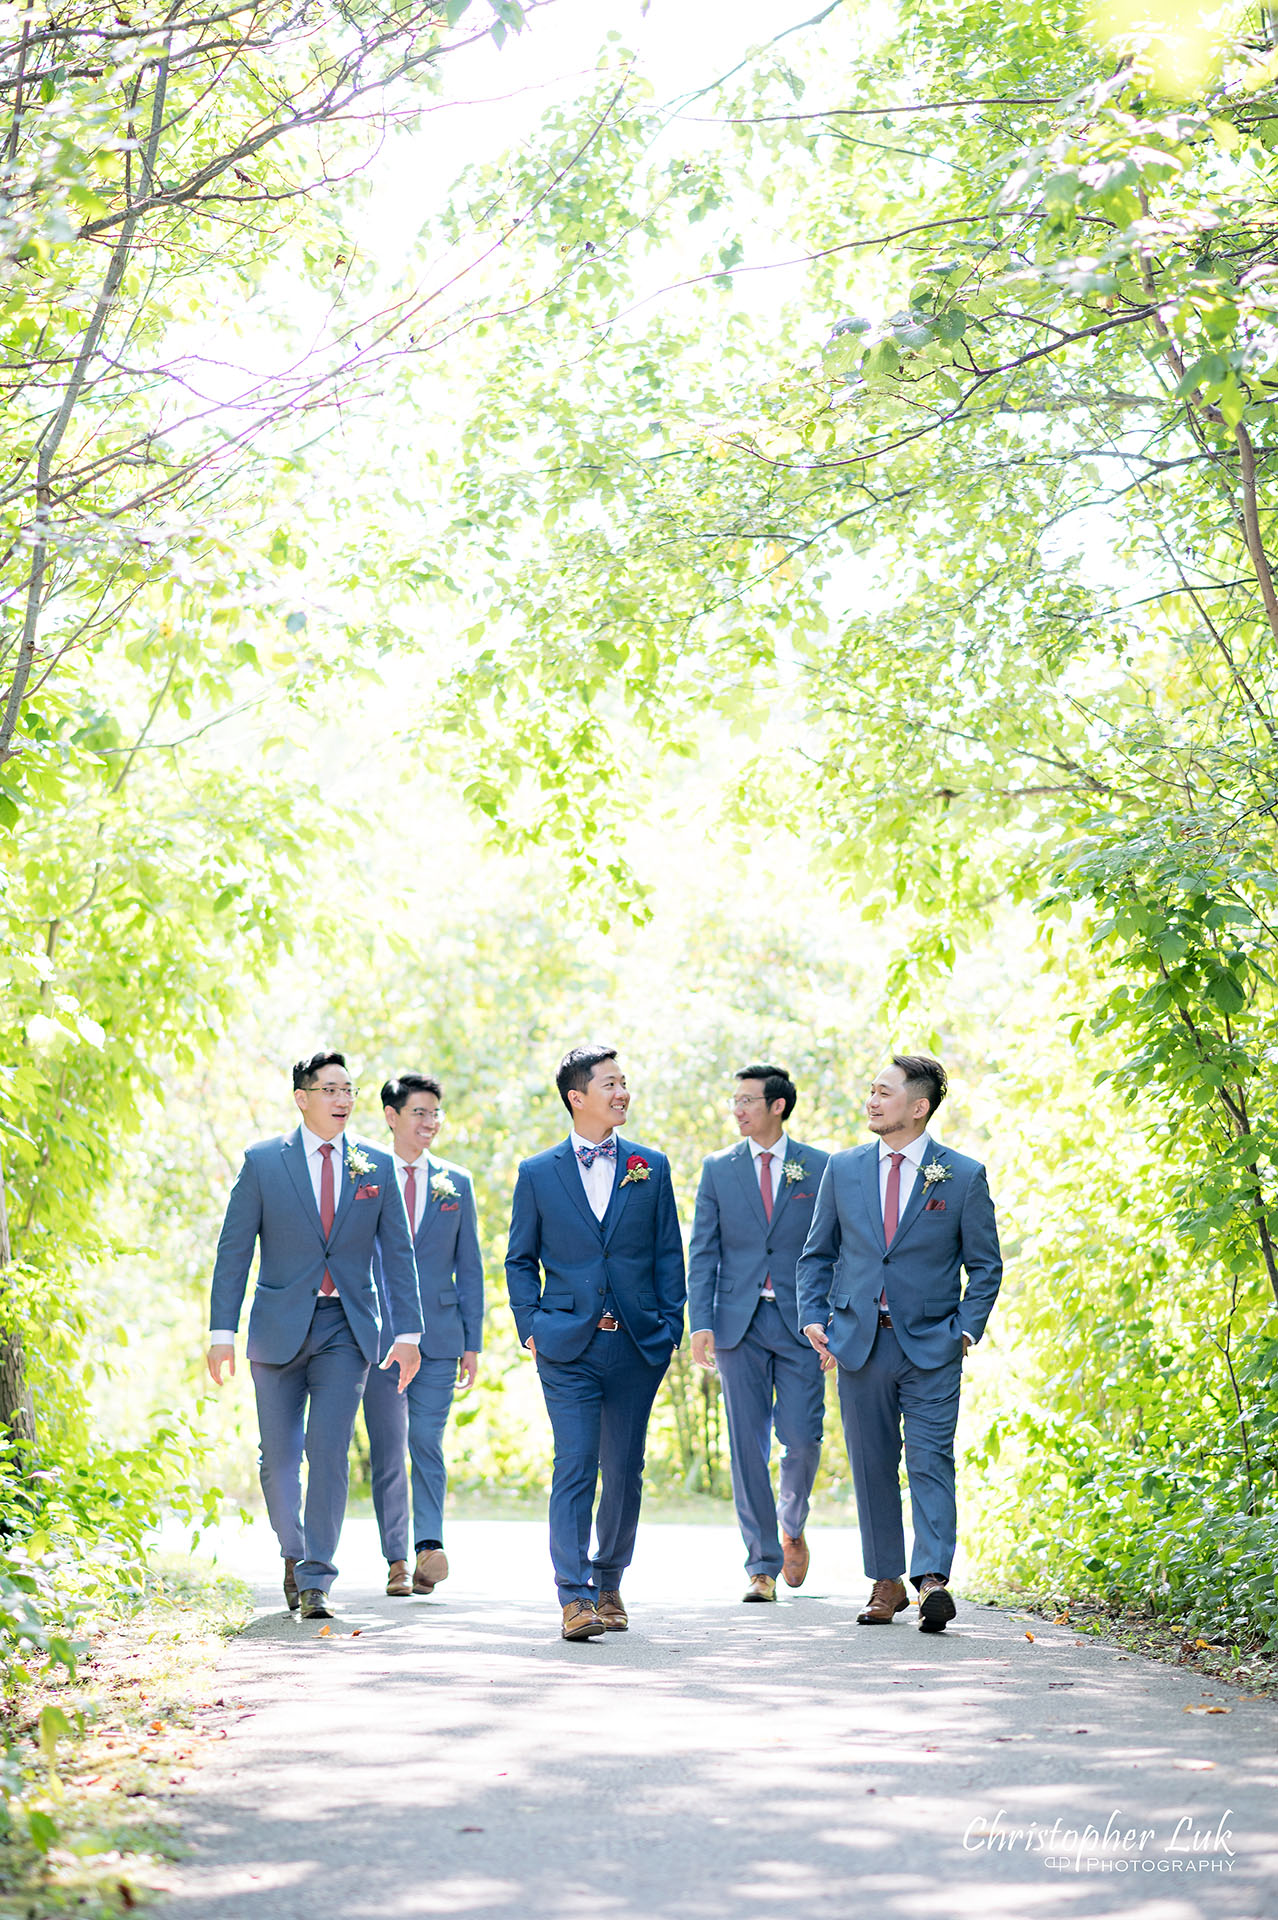 Christopher Luk Toronto Wedding Photographer Bridle Trail Baptist Church Unionville Main Street Crystal Fountain Event Venue Bride Groom Natural Photojournalistic Candid Creative Portrait Session Pictures Forest Best Man Groomsmen Stylish Boy Band Walking Together